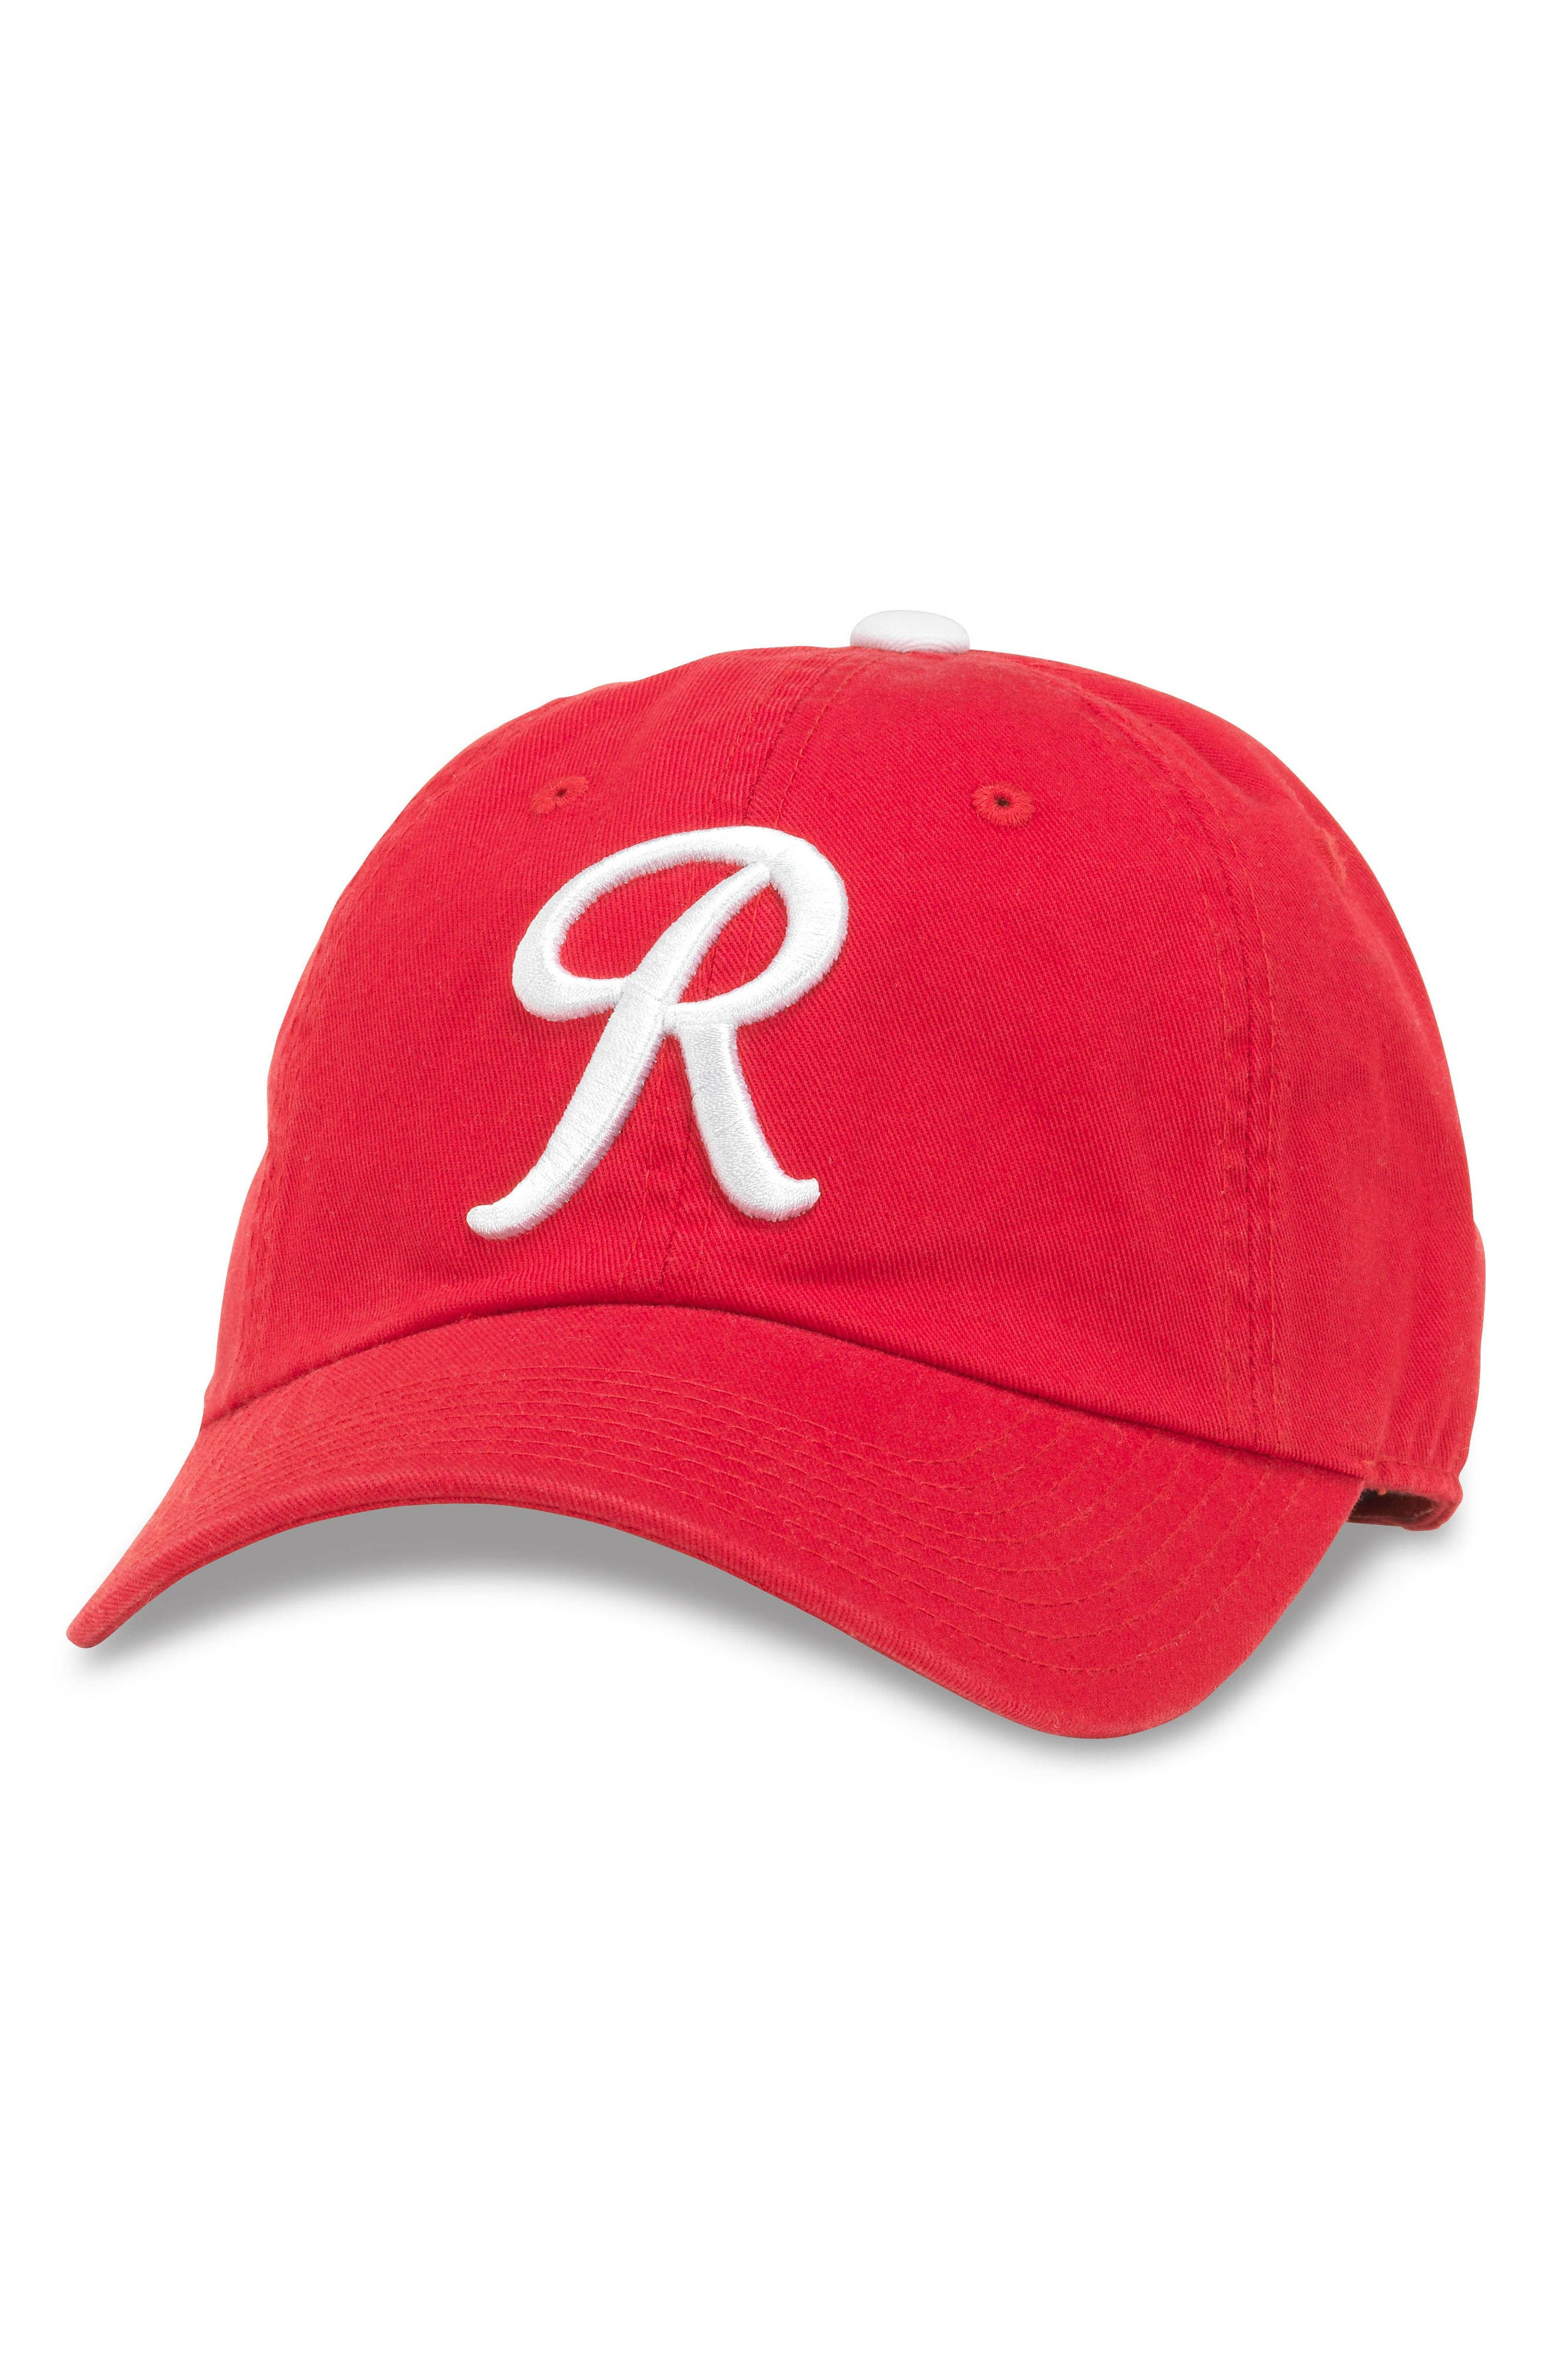 Main Image - American Needle Ballpark MLB Baseball Cap